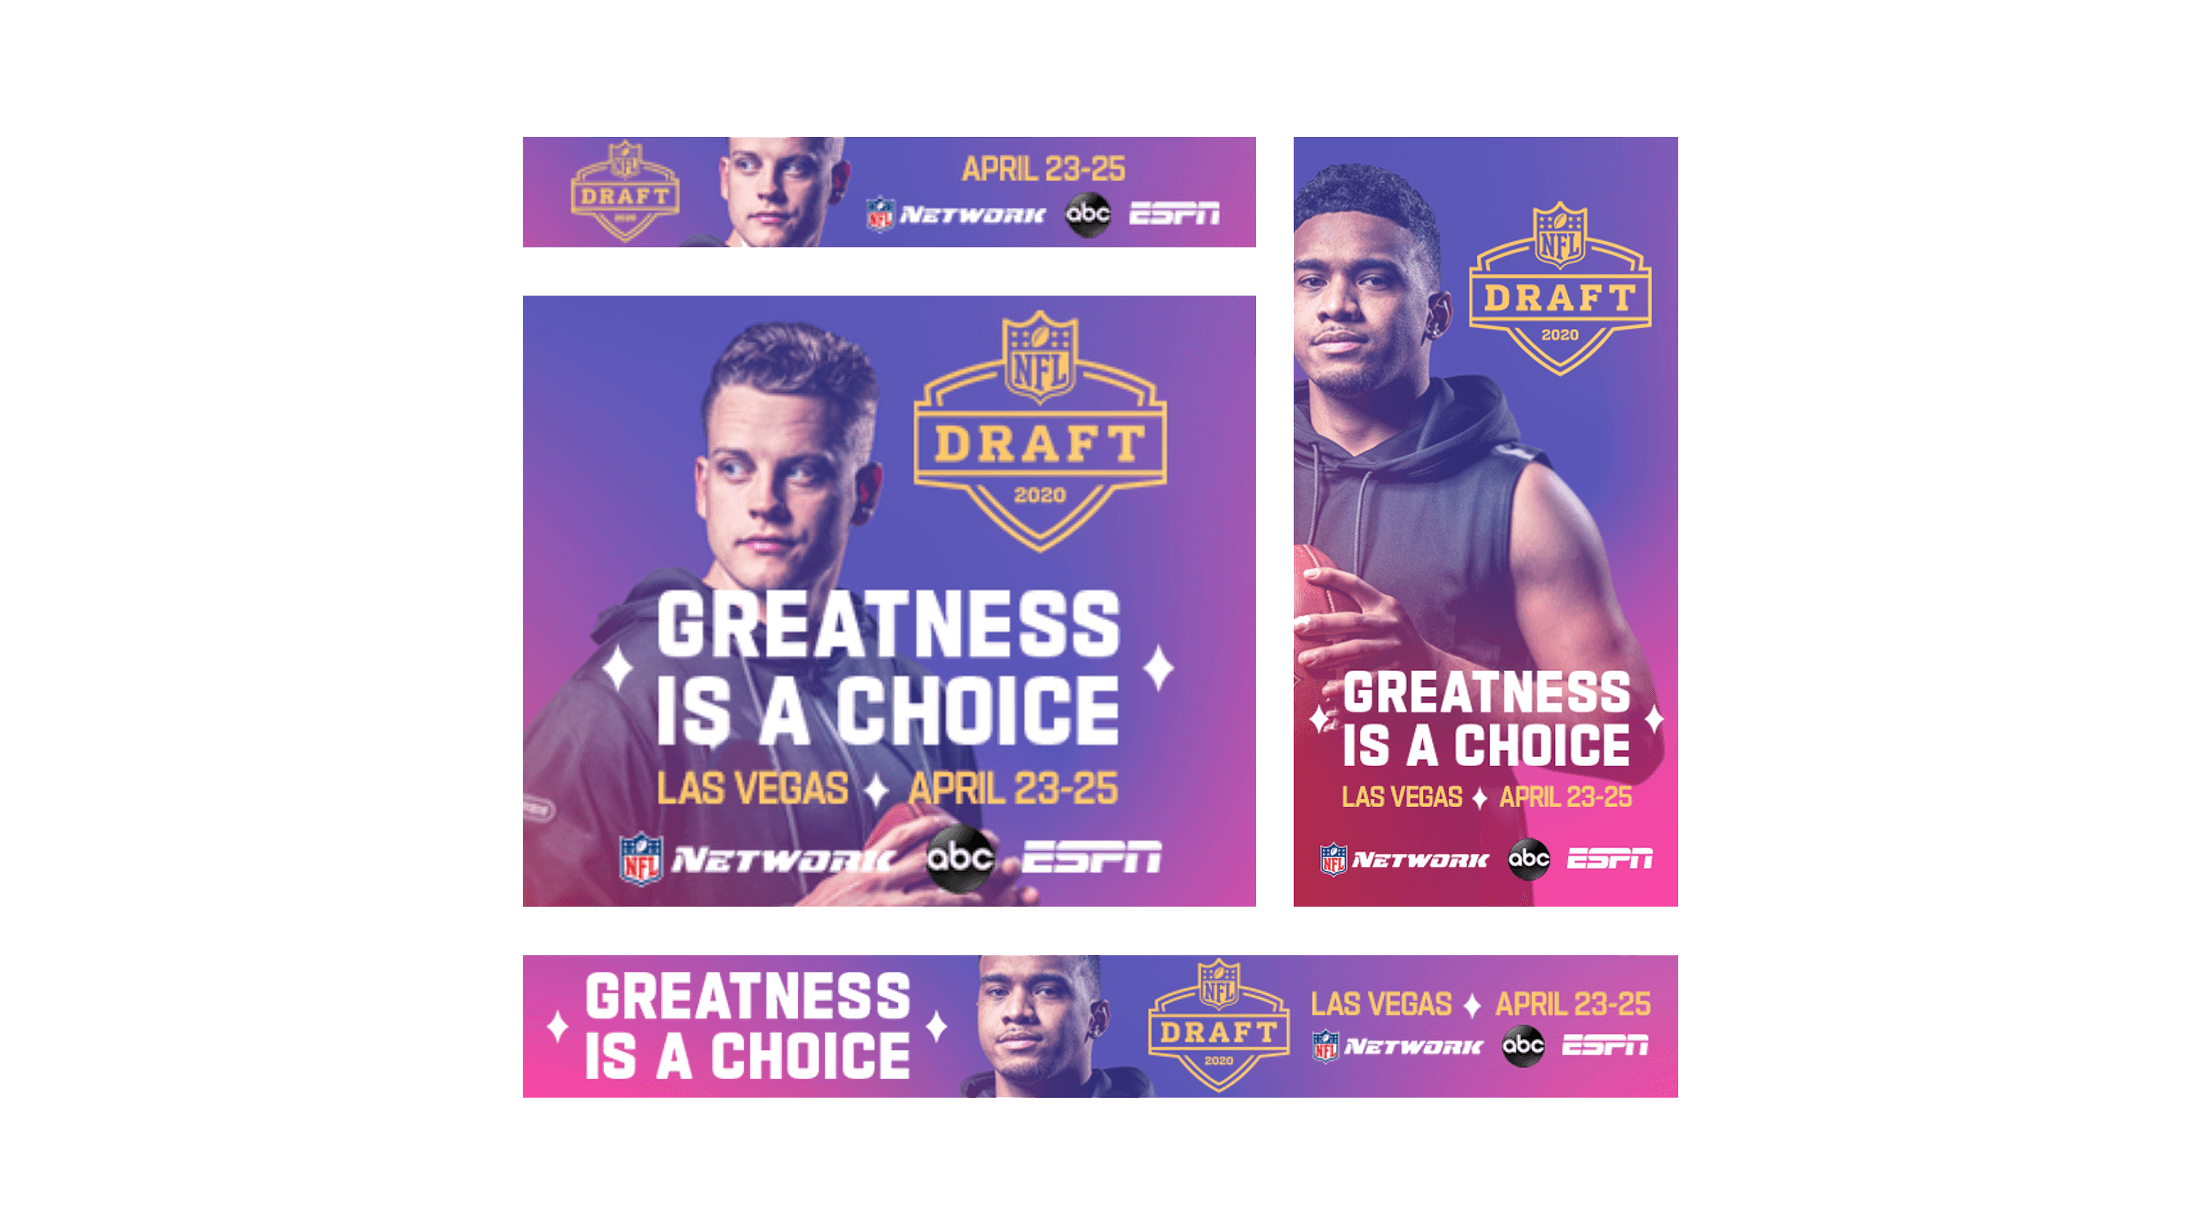 Draft-2020-banners